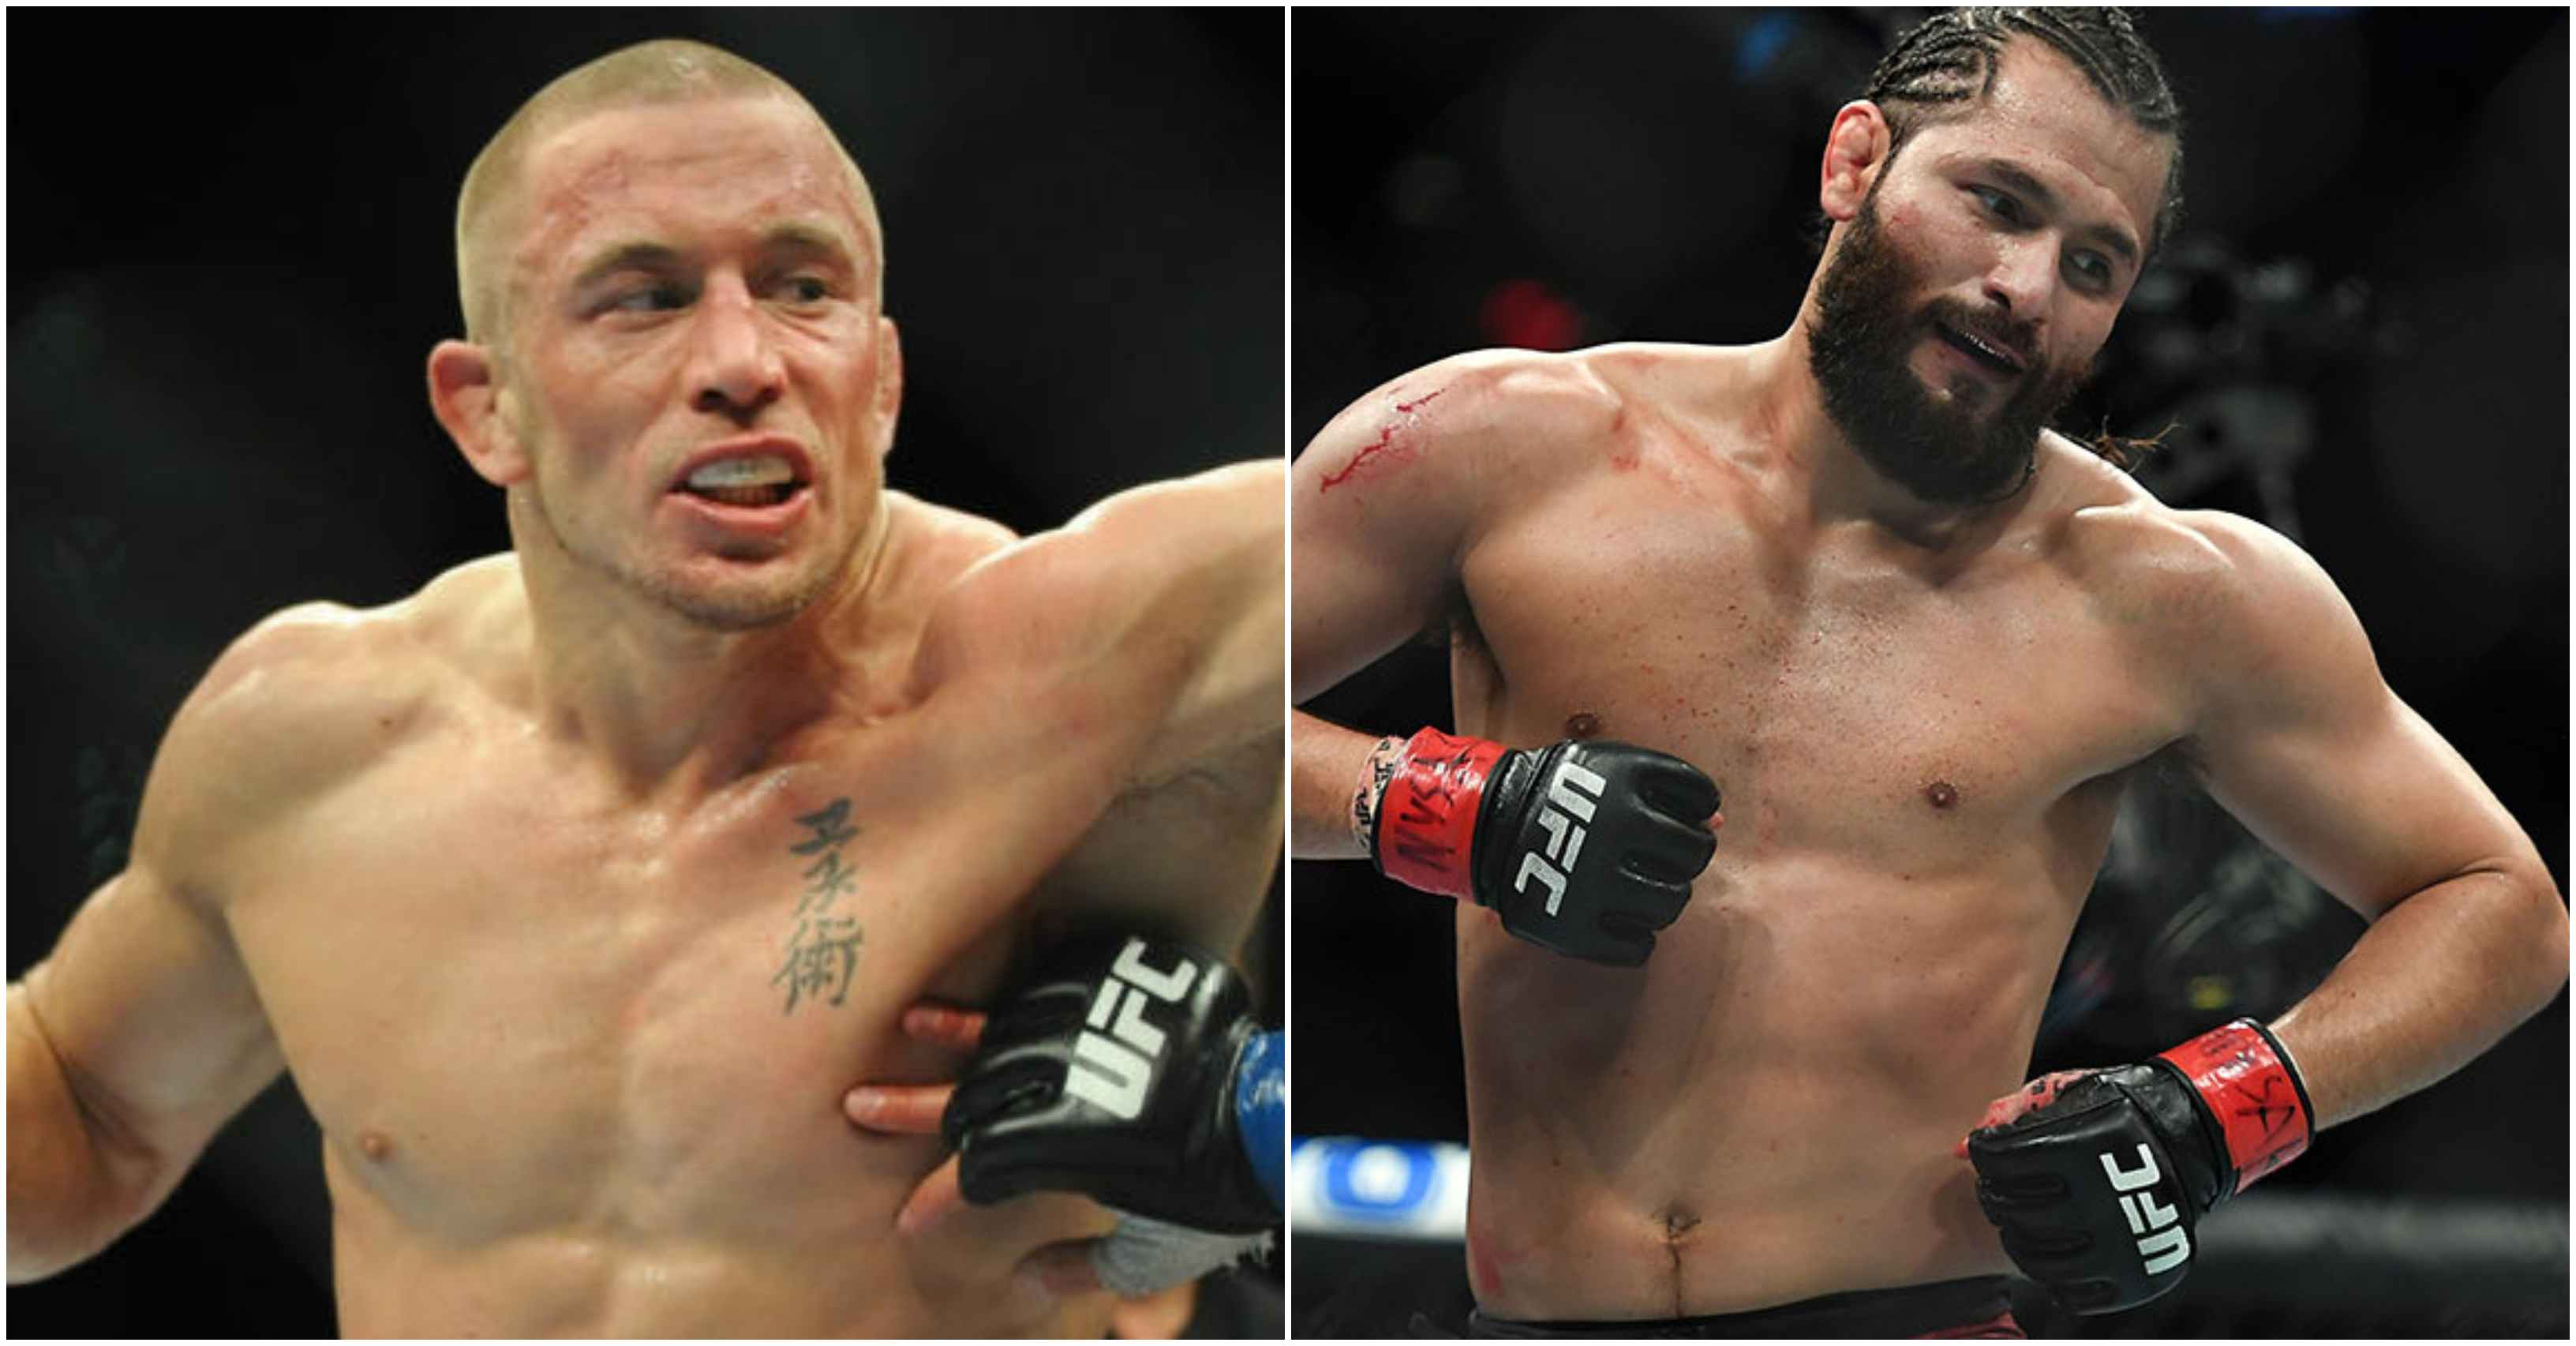 Jorge Masvidal calls GSP a 'f*****g animal' but still wants to break his face - Jorge